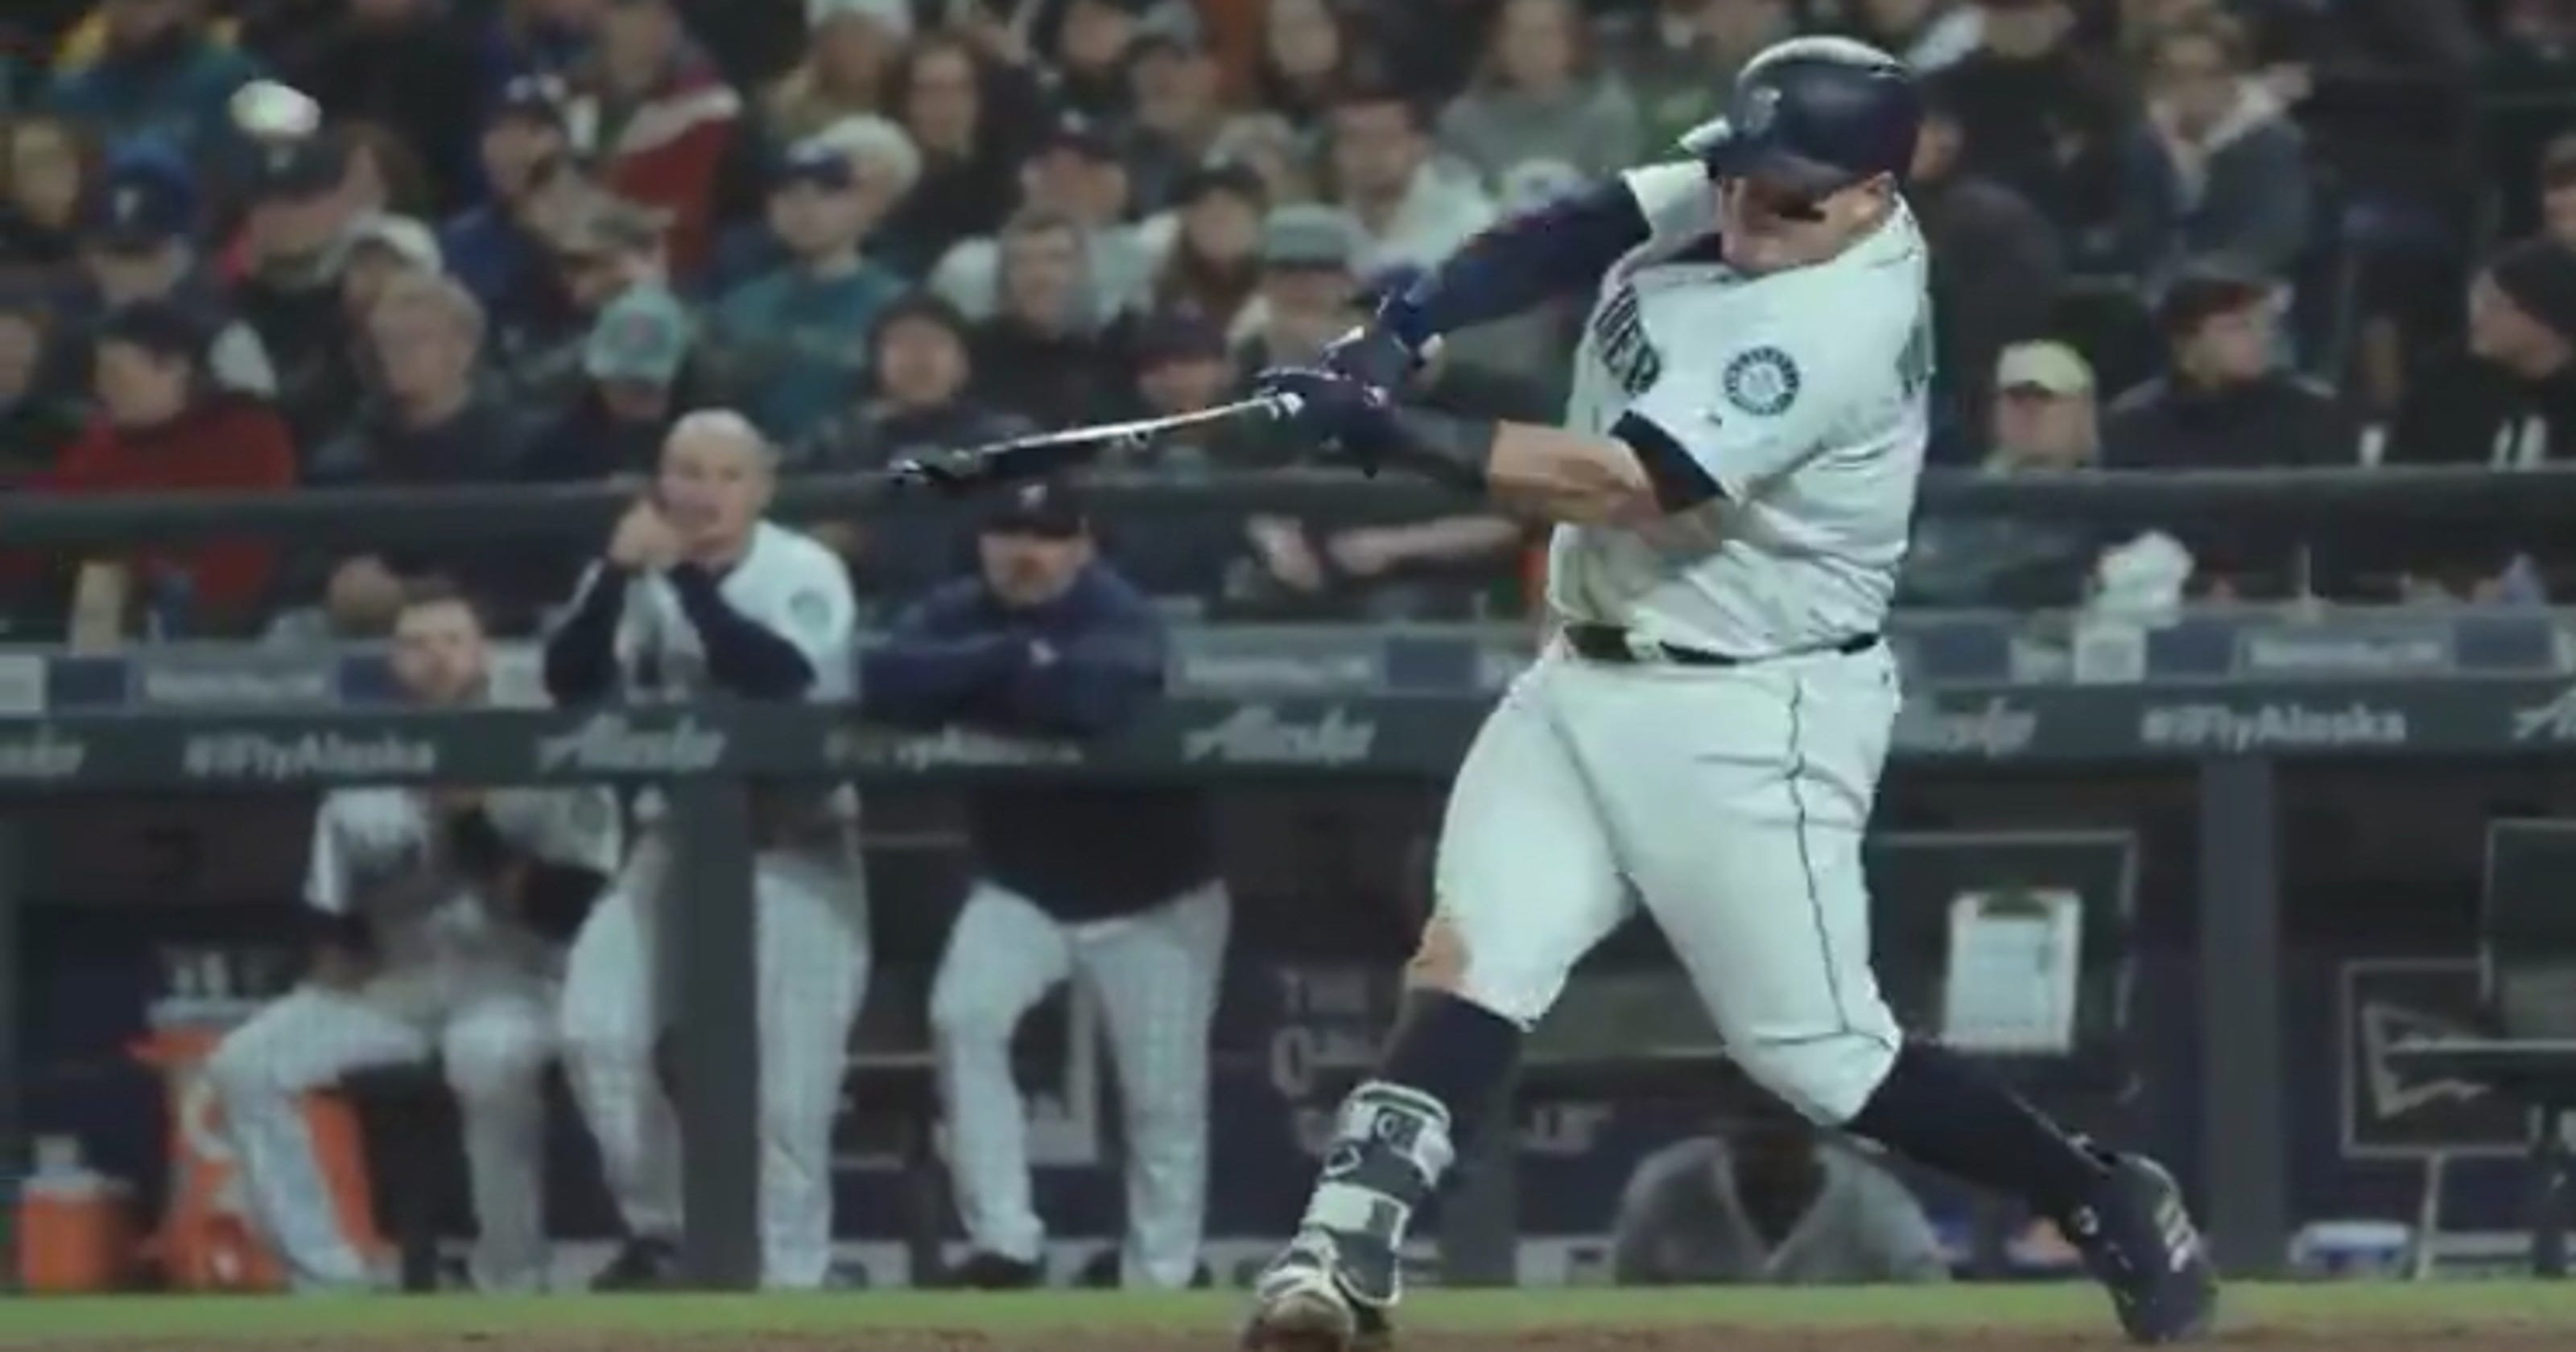 new product bede9 67418 Daniel Vogelbach hits second Major League homer day after ...